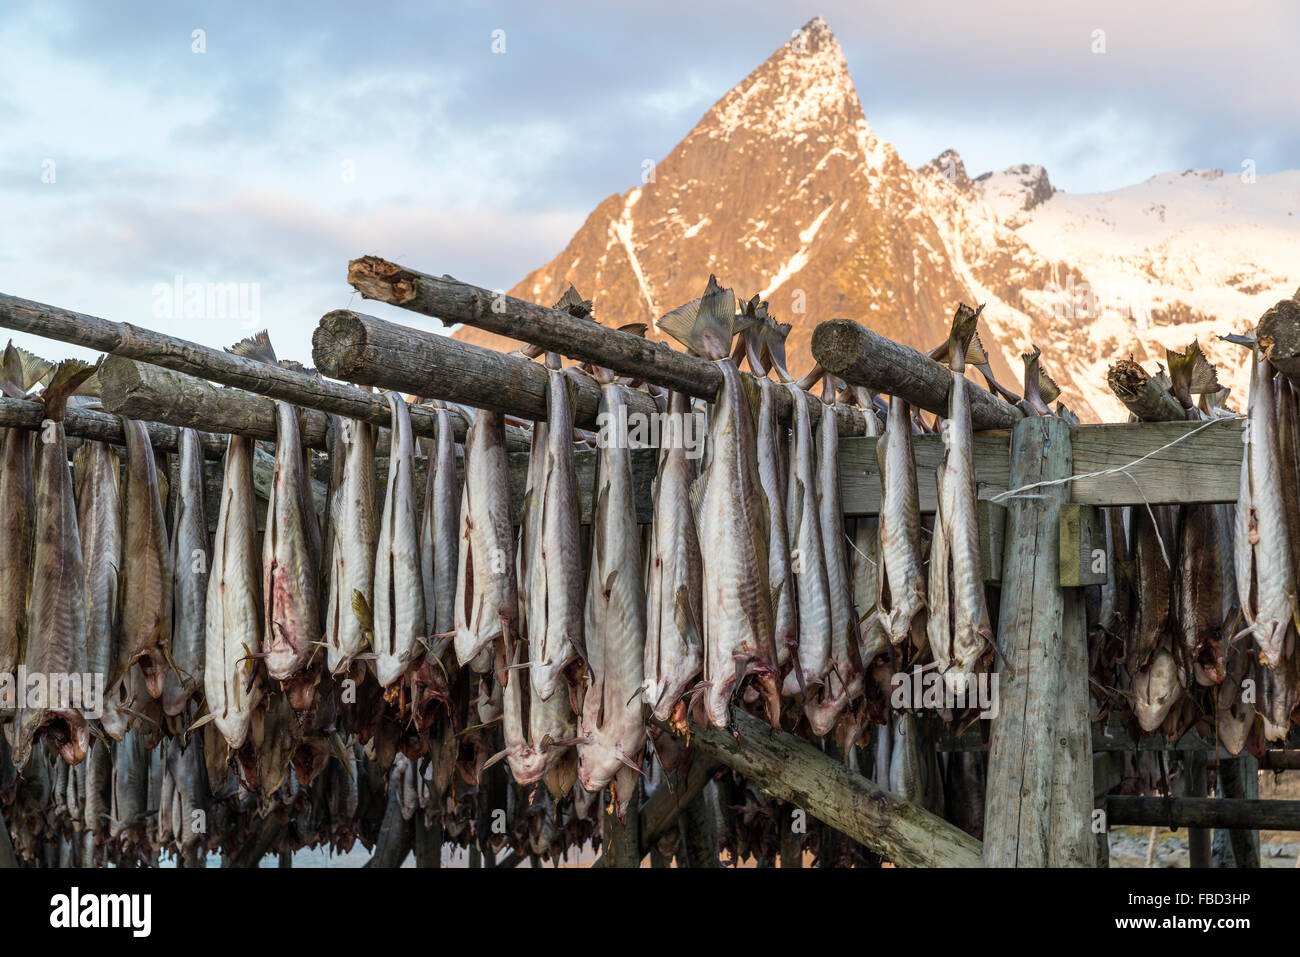 Cod hanging to dry on wooden racks in front of the mountain Olstinden, Moskenes, Lofoten, Norway Stock Photo